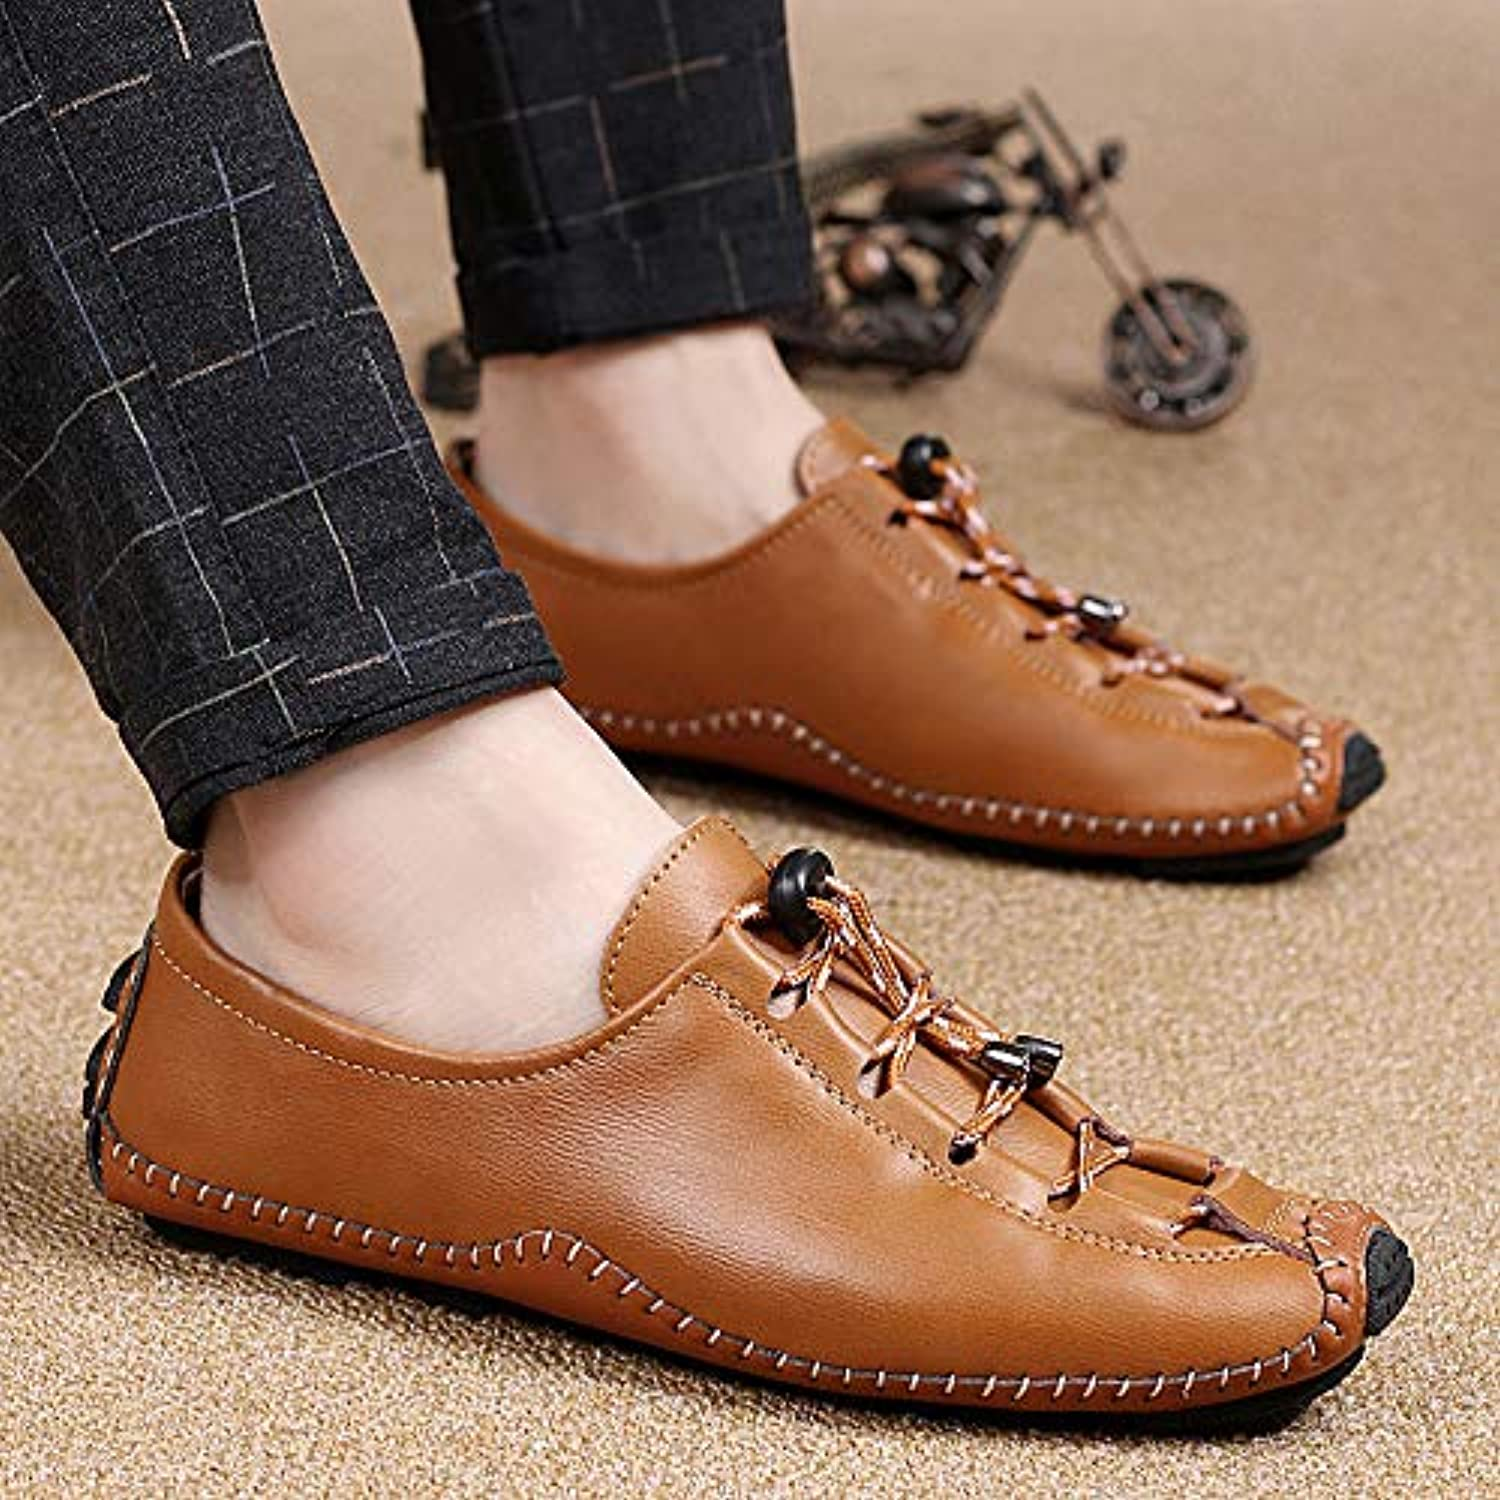 LOVDRAM Casual shoes Men'S Casual shoes New Simple Peas shoes Men'S Casual shoes Set Feet Men'S shoes Personality Fashion